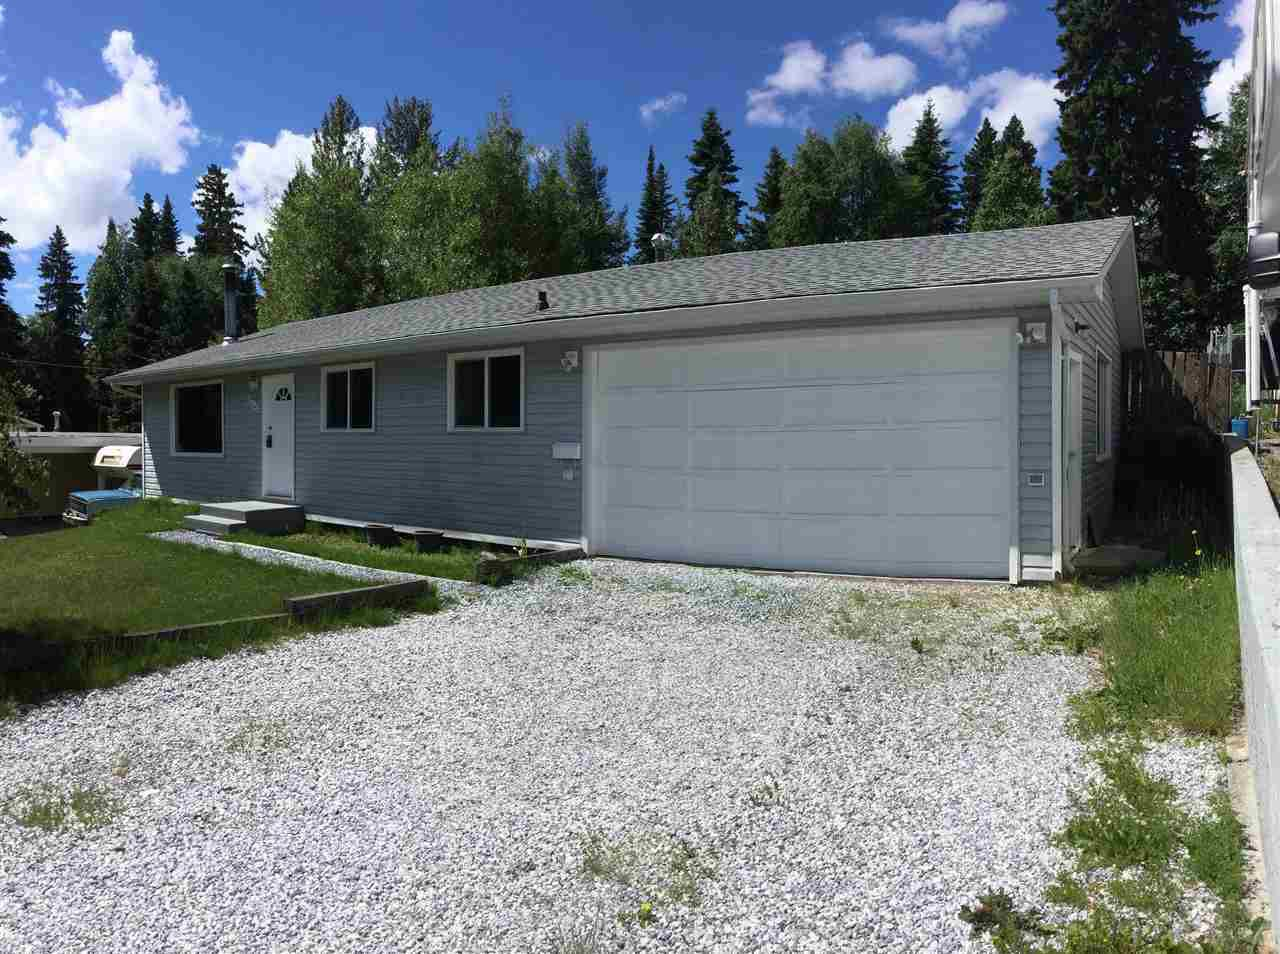 Main Photo: 3725 HAZEL Drive in Prince George: Birchwood House for sale (PG City North (Zone 73))  : MLS®# R2178789